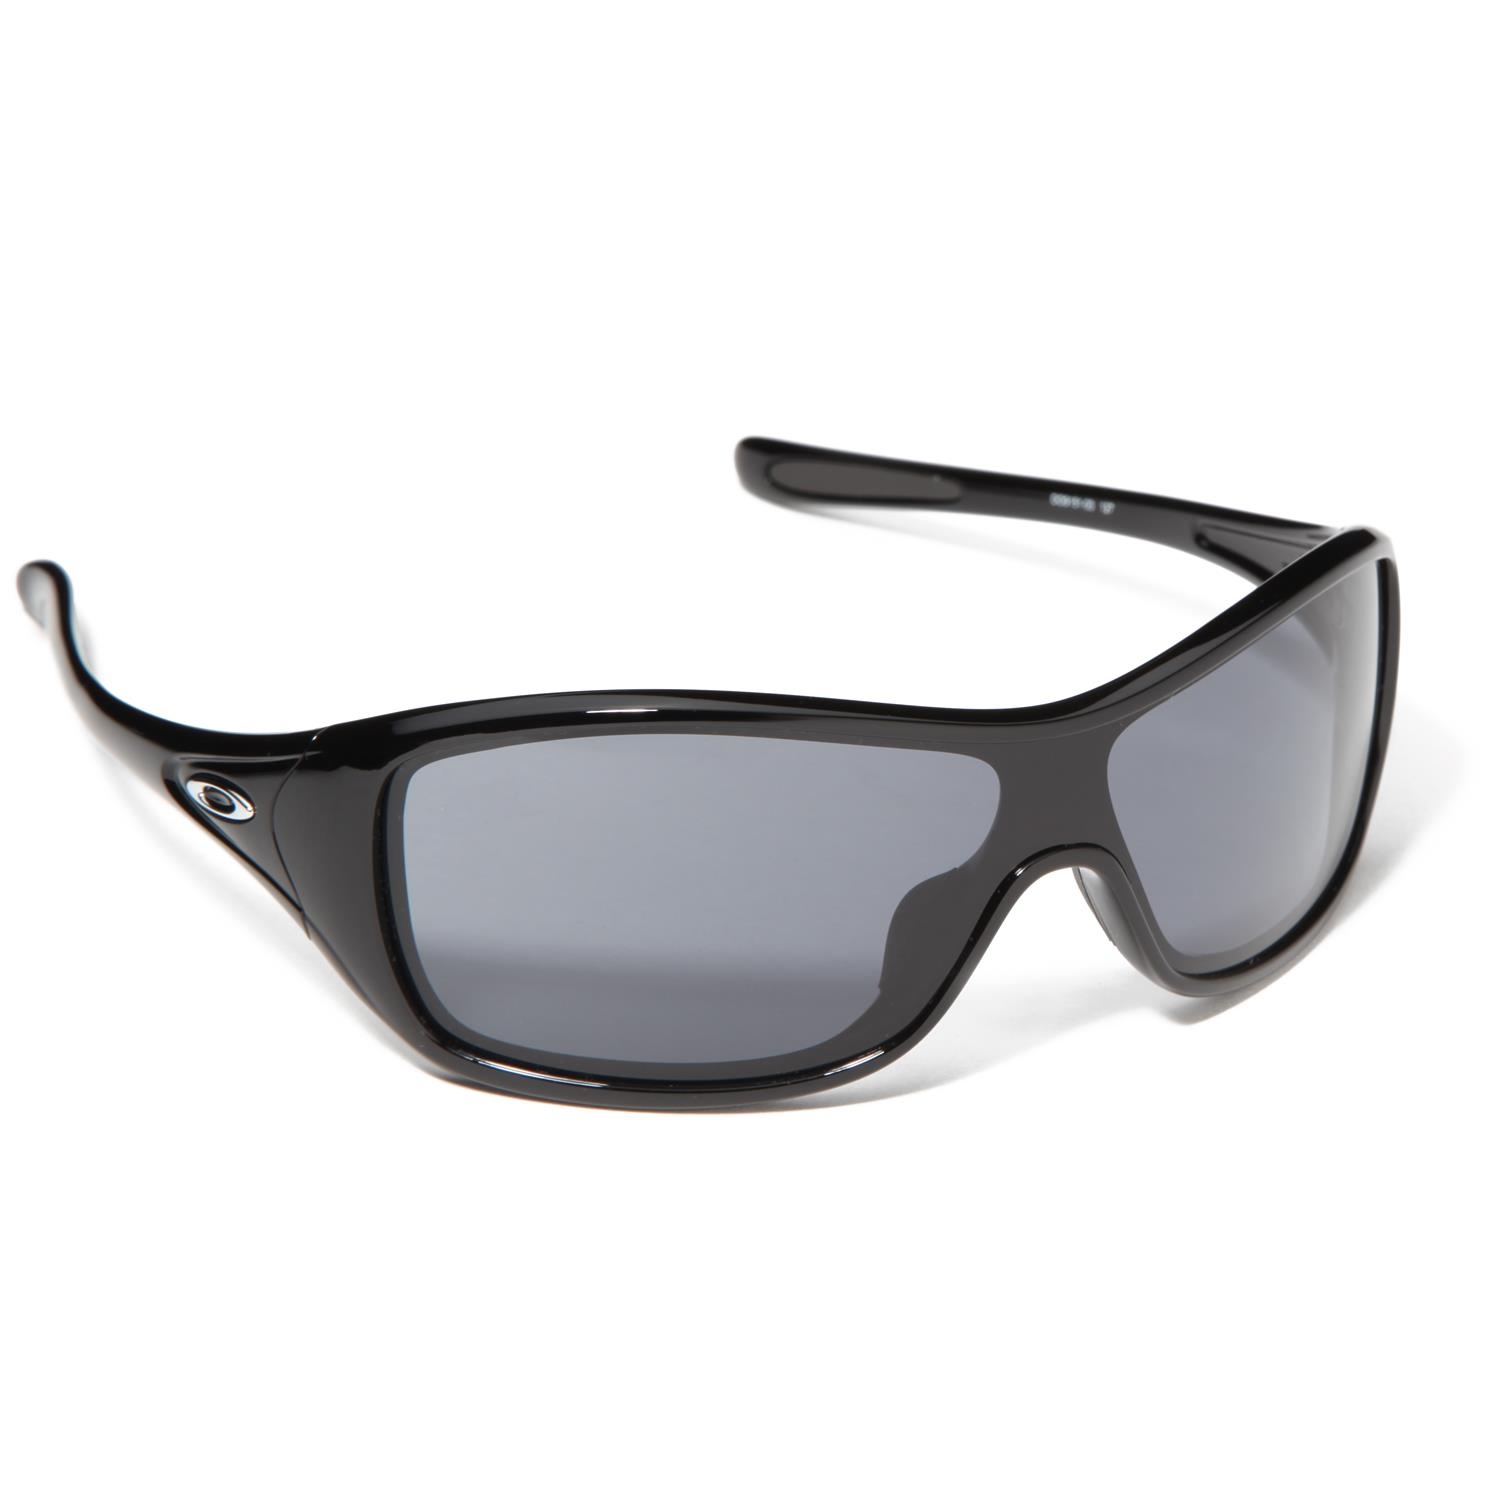 9xey7d2qqpprla2 Oakley Women Sunglasses